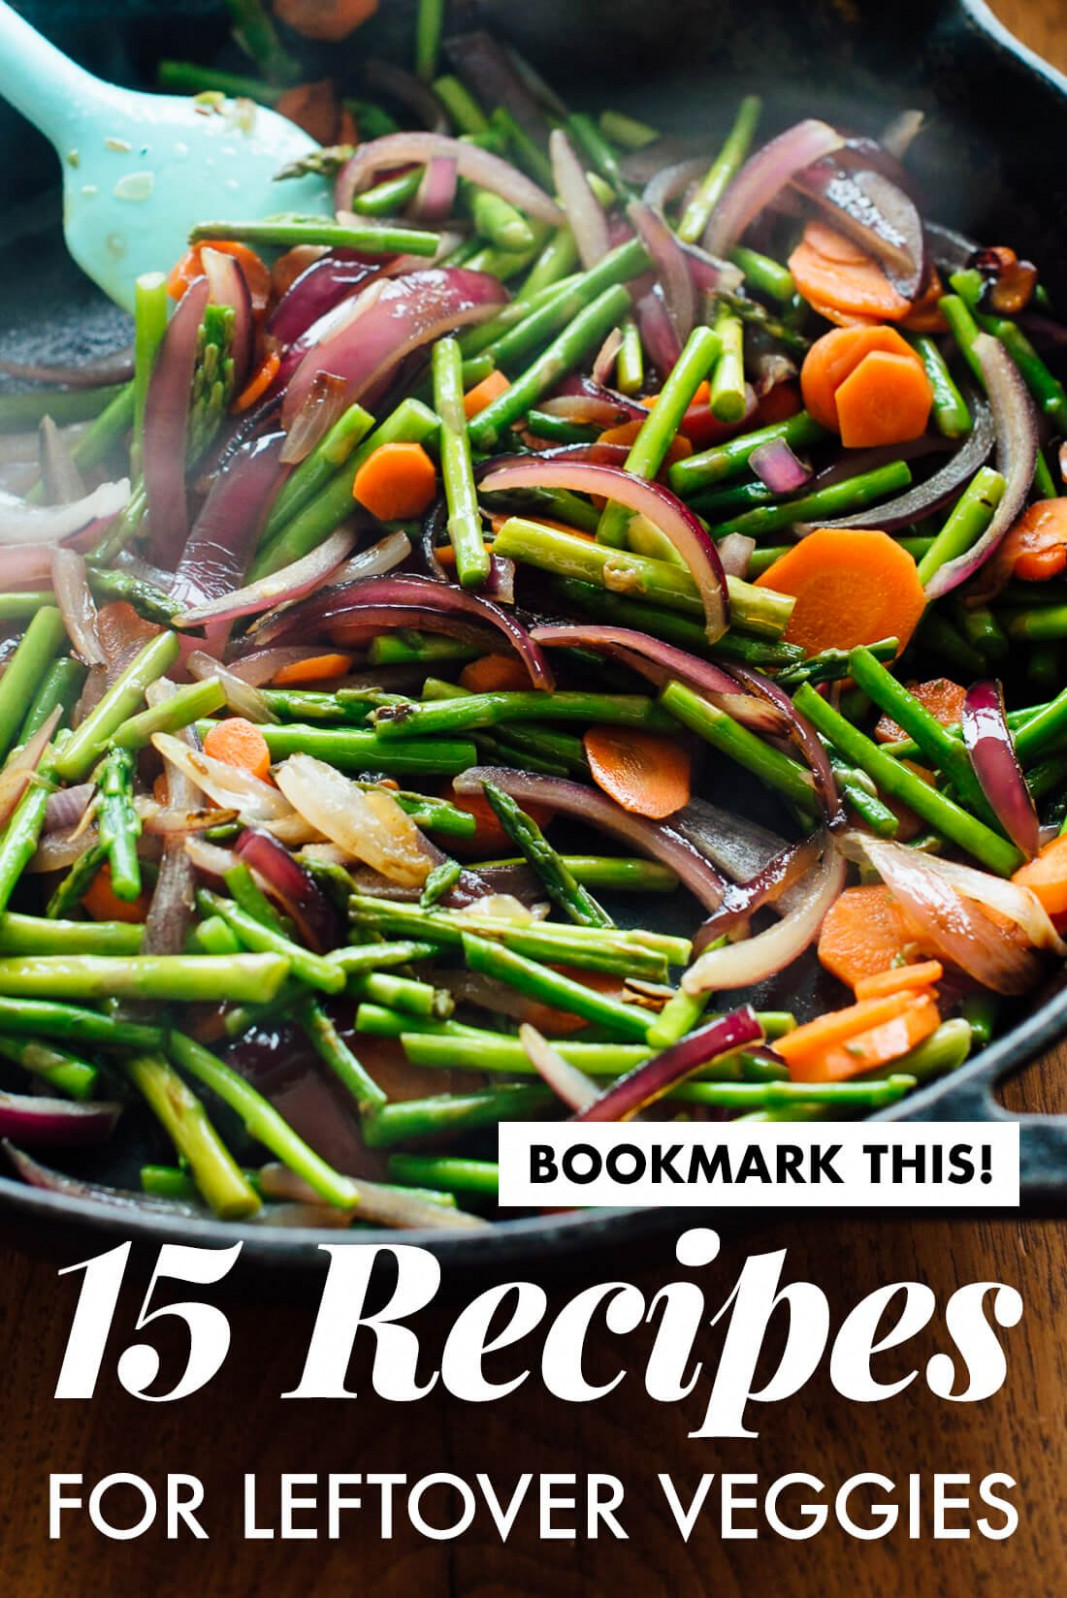 15 Recipes for Leftover Veggies - Cookie and Kate - food recipes vegetables